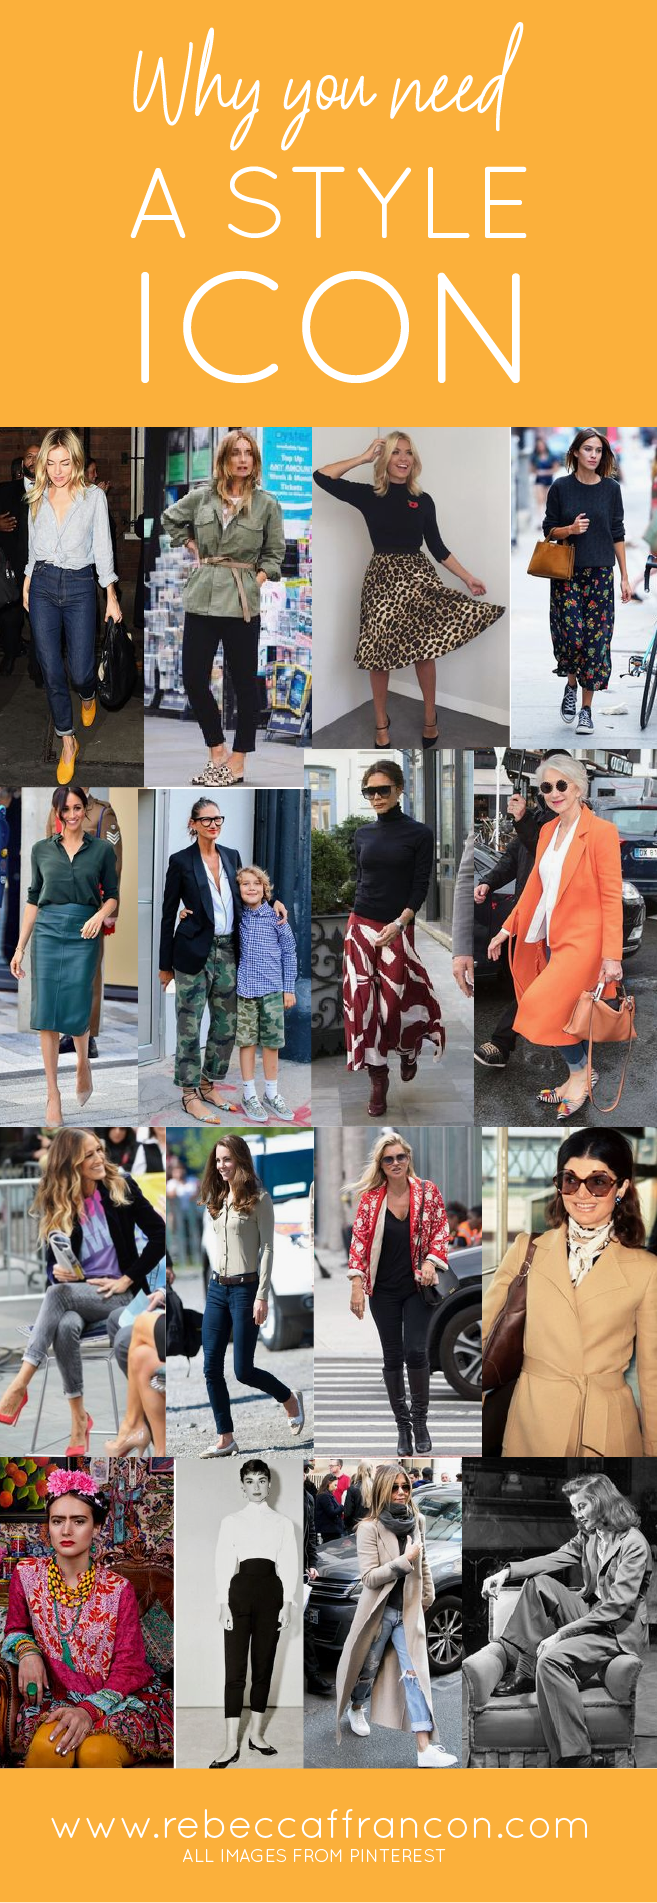 why you need a style icon